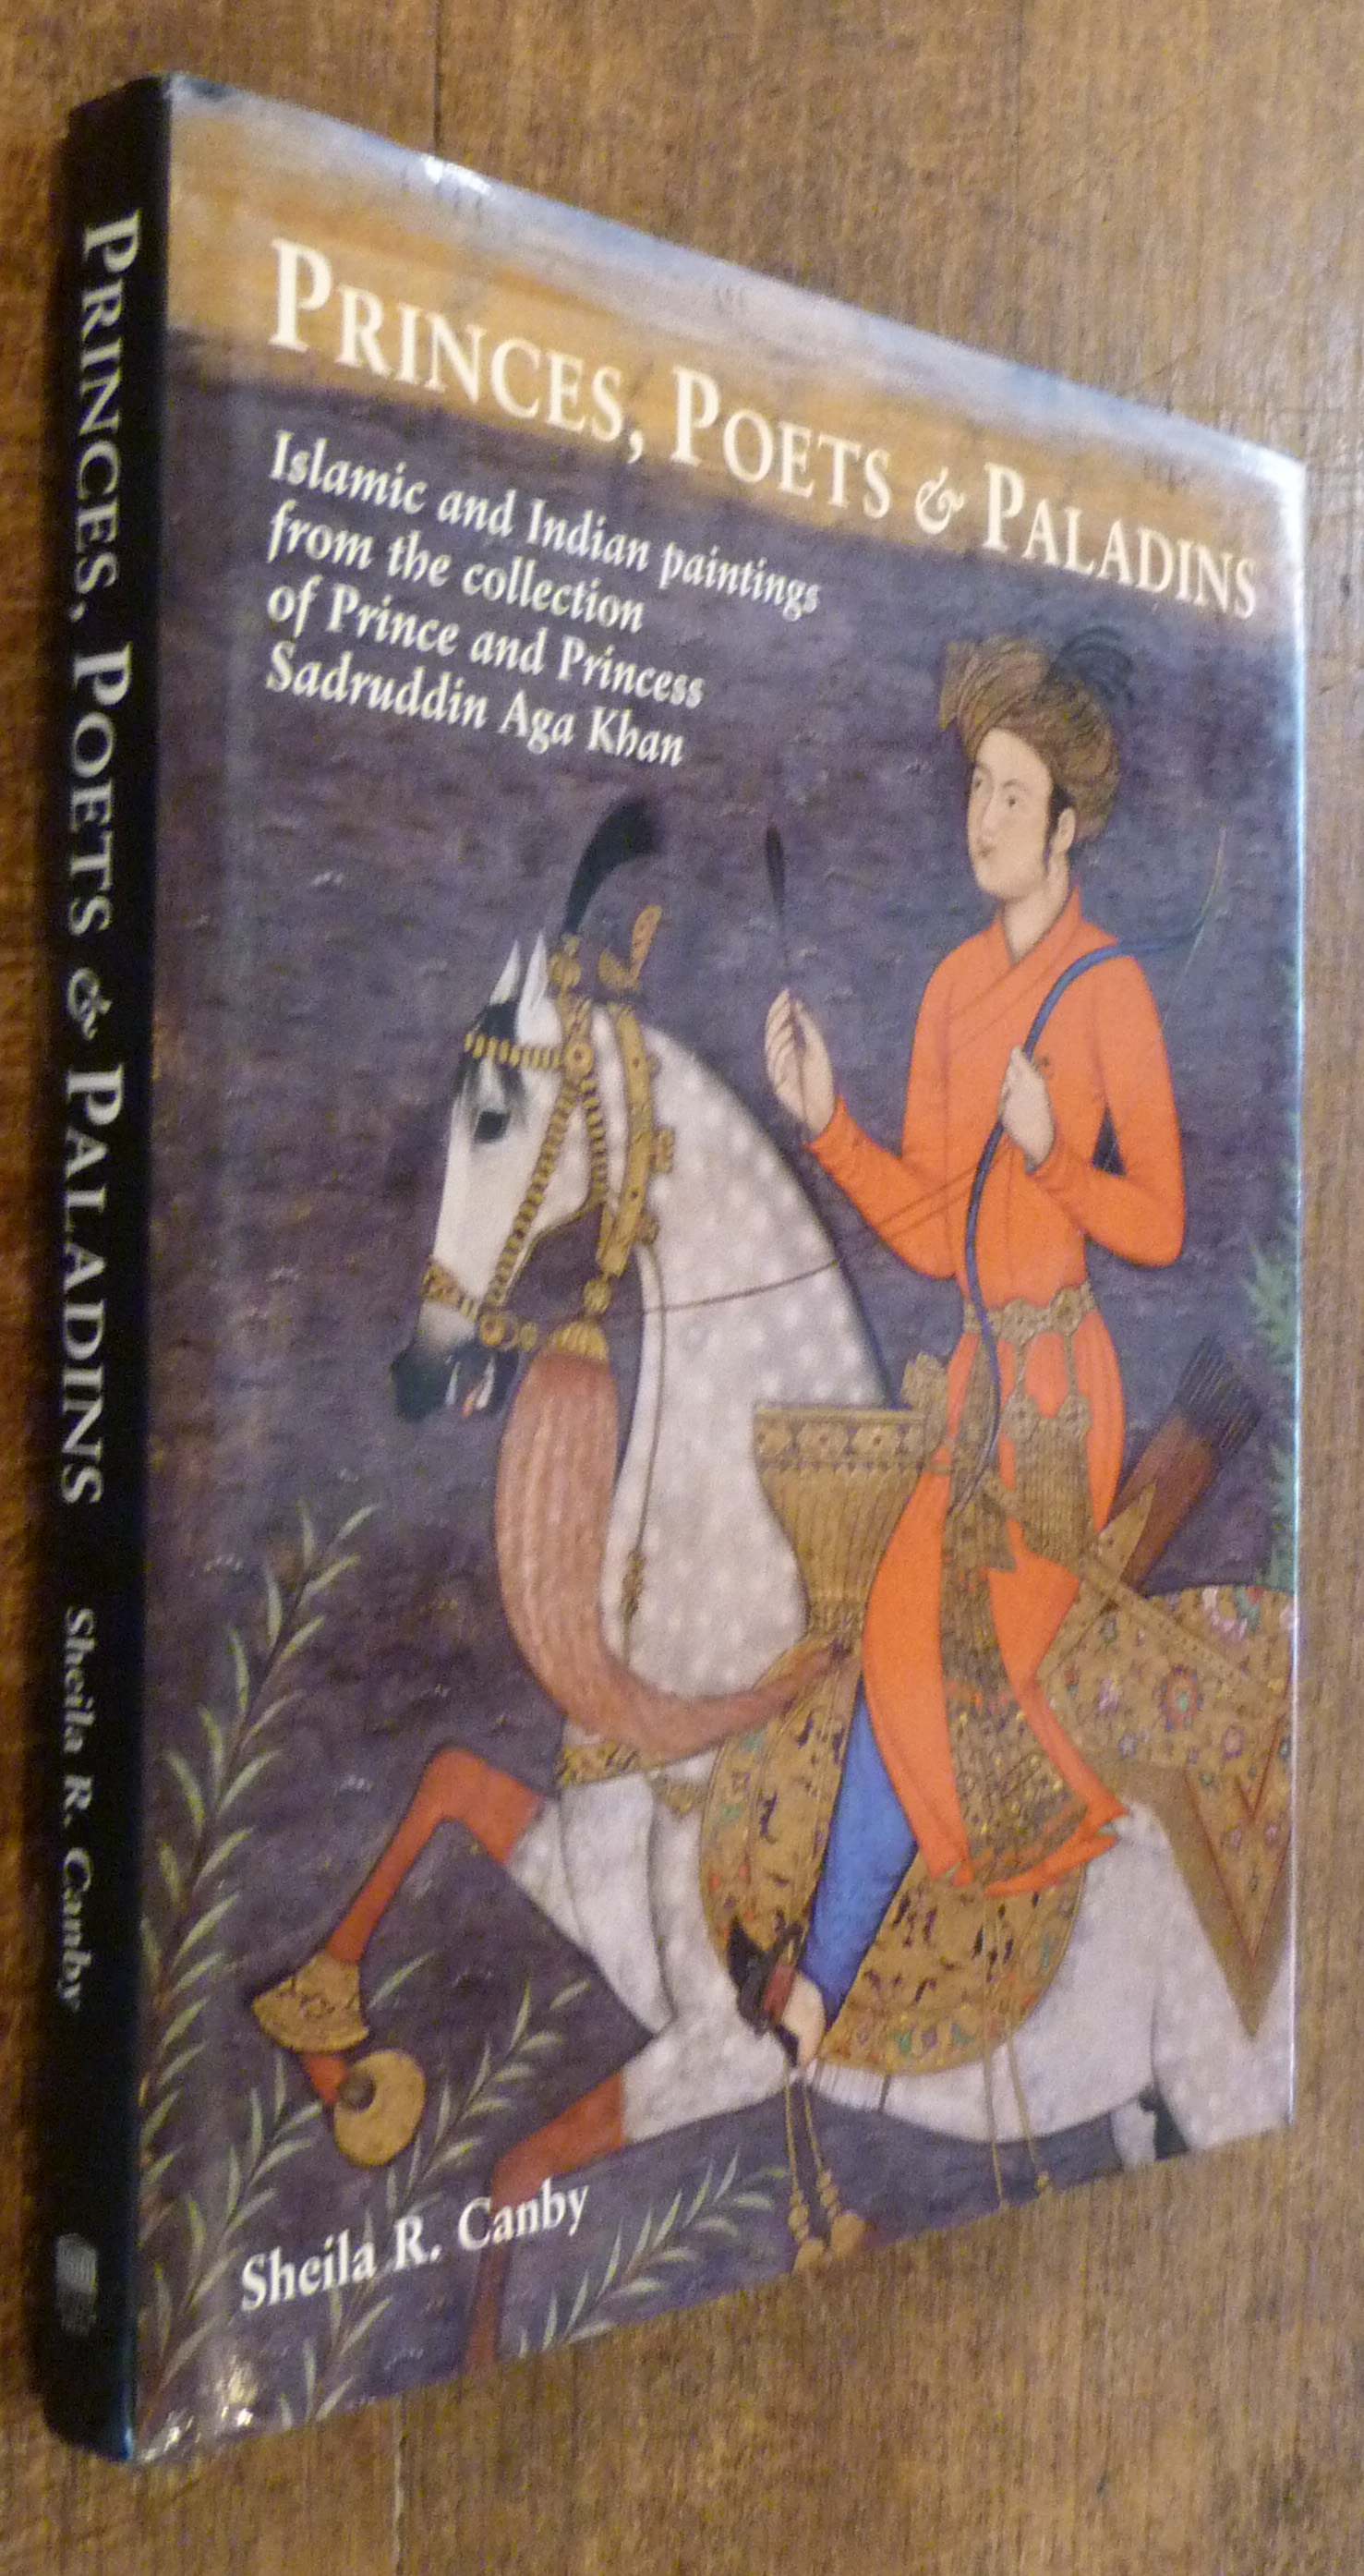 Image for Princes, Poets and Paladins: Islamic and Indian Paintings from the Collection of Prince and Princess Sadruddin Aga Khan